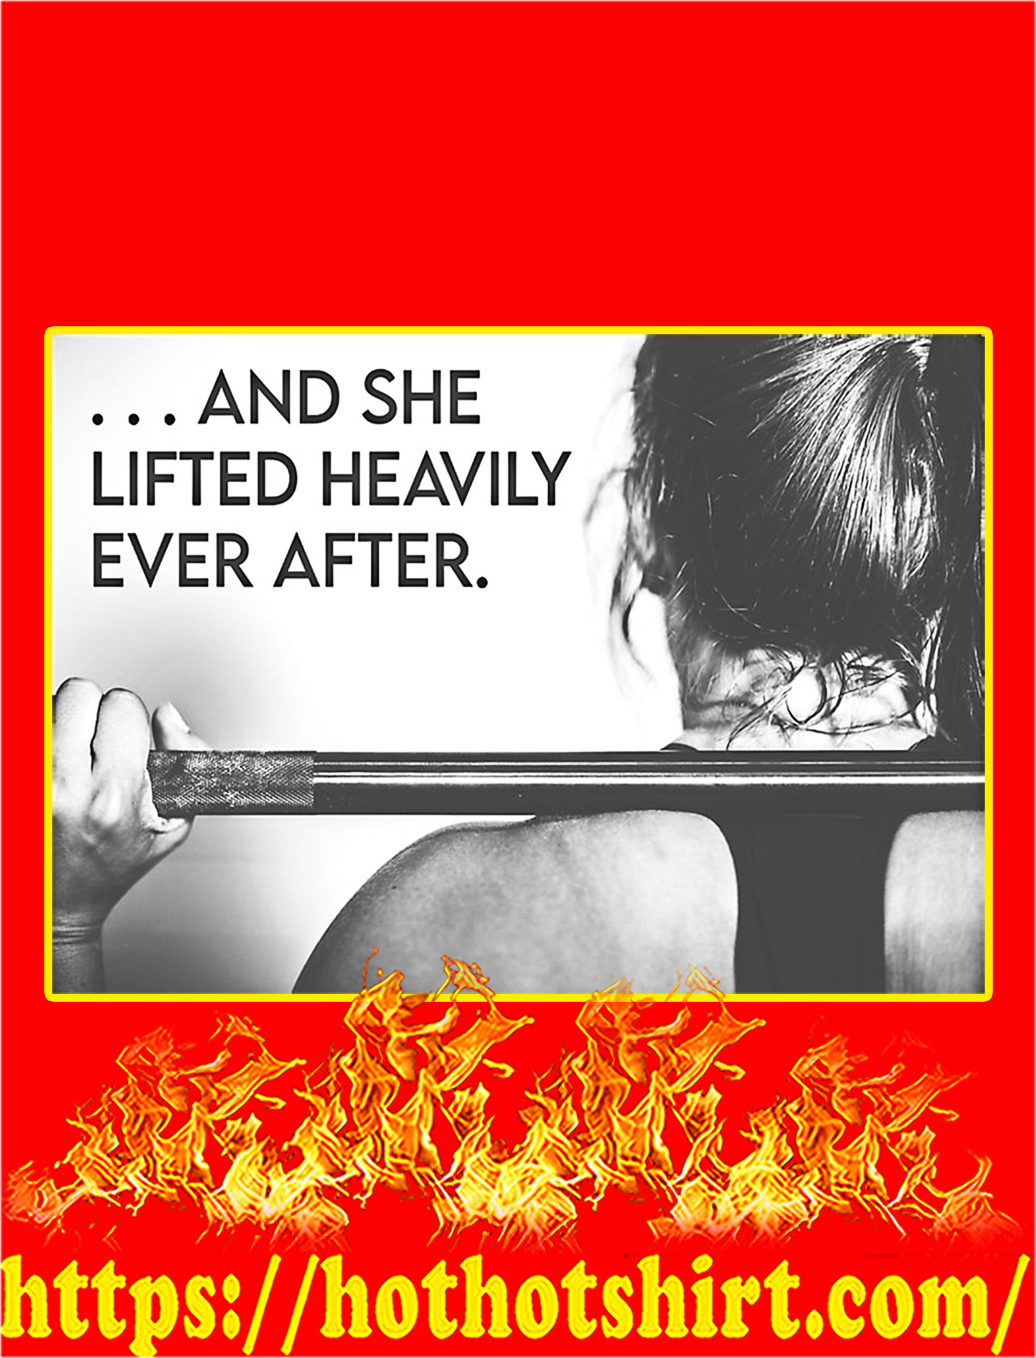 And she lifted heavily ever after fitness poster - A2